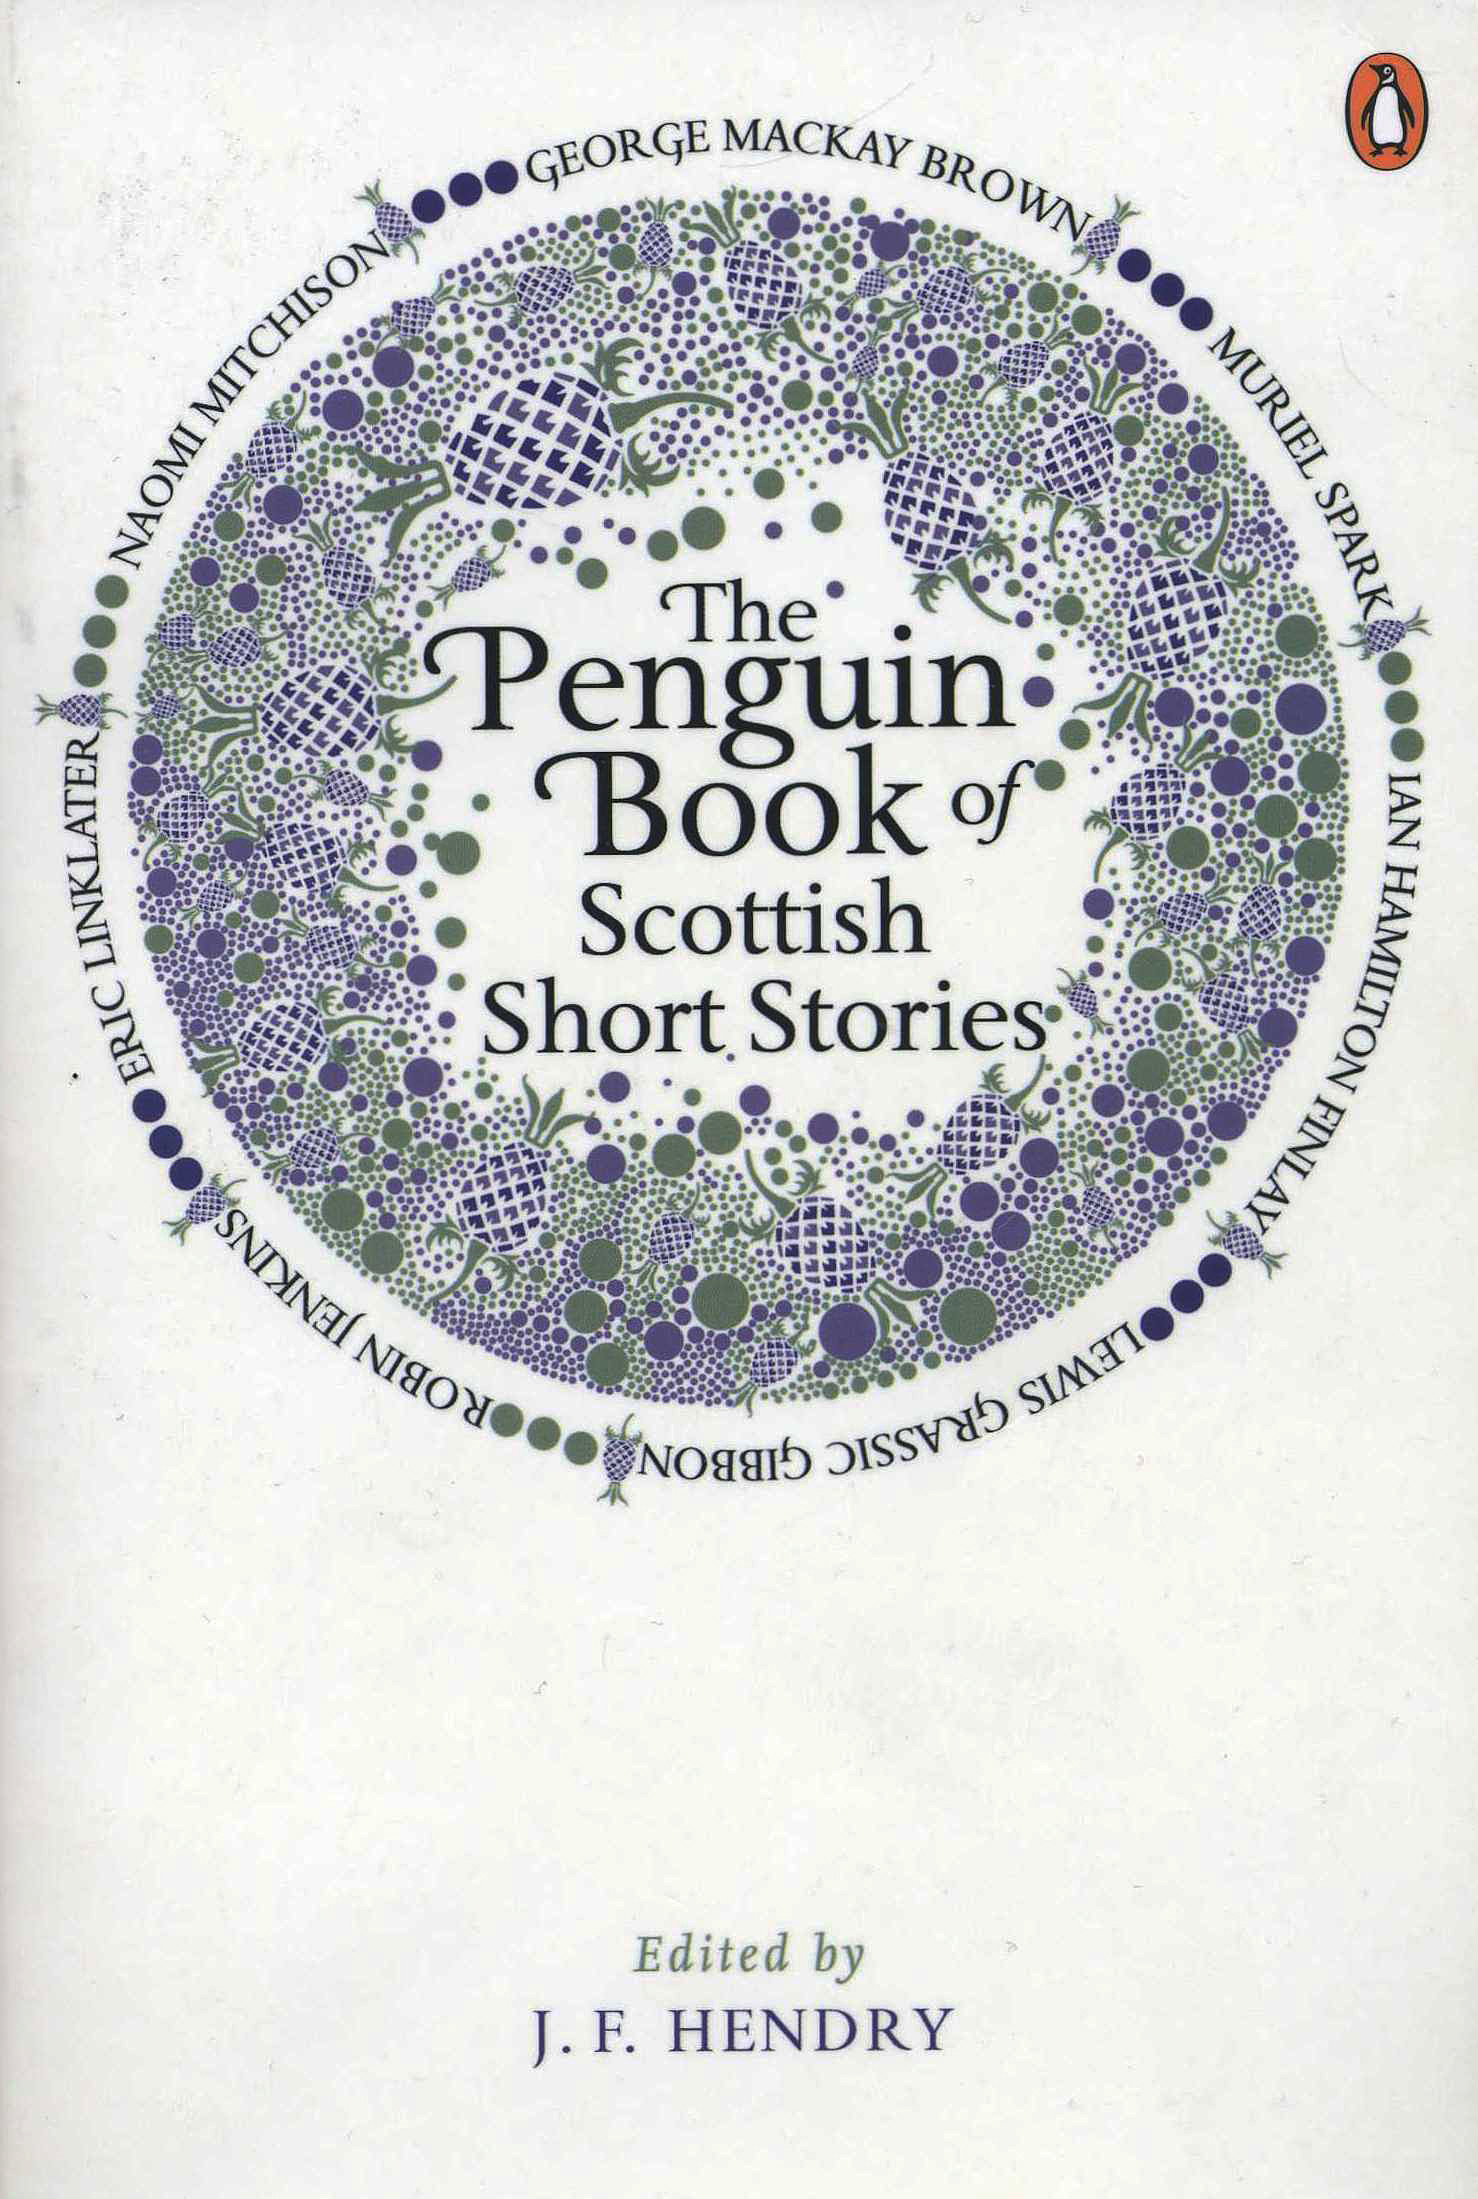 The Penguin Book of Short Stories JF Hendry 2011